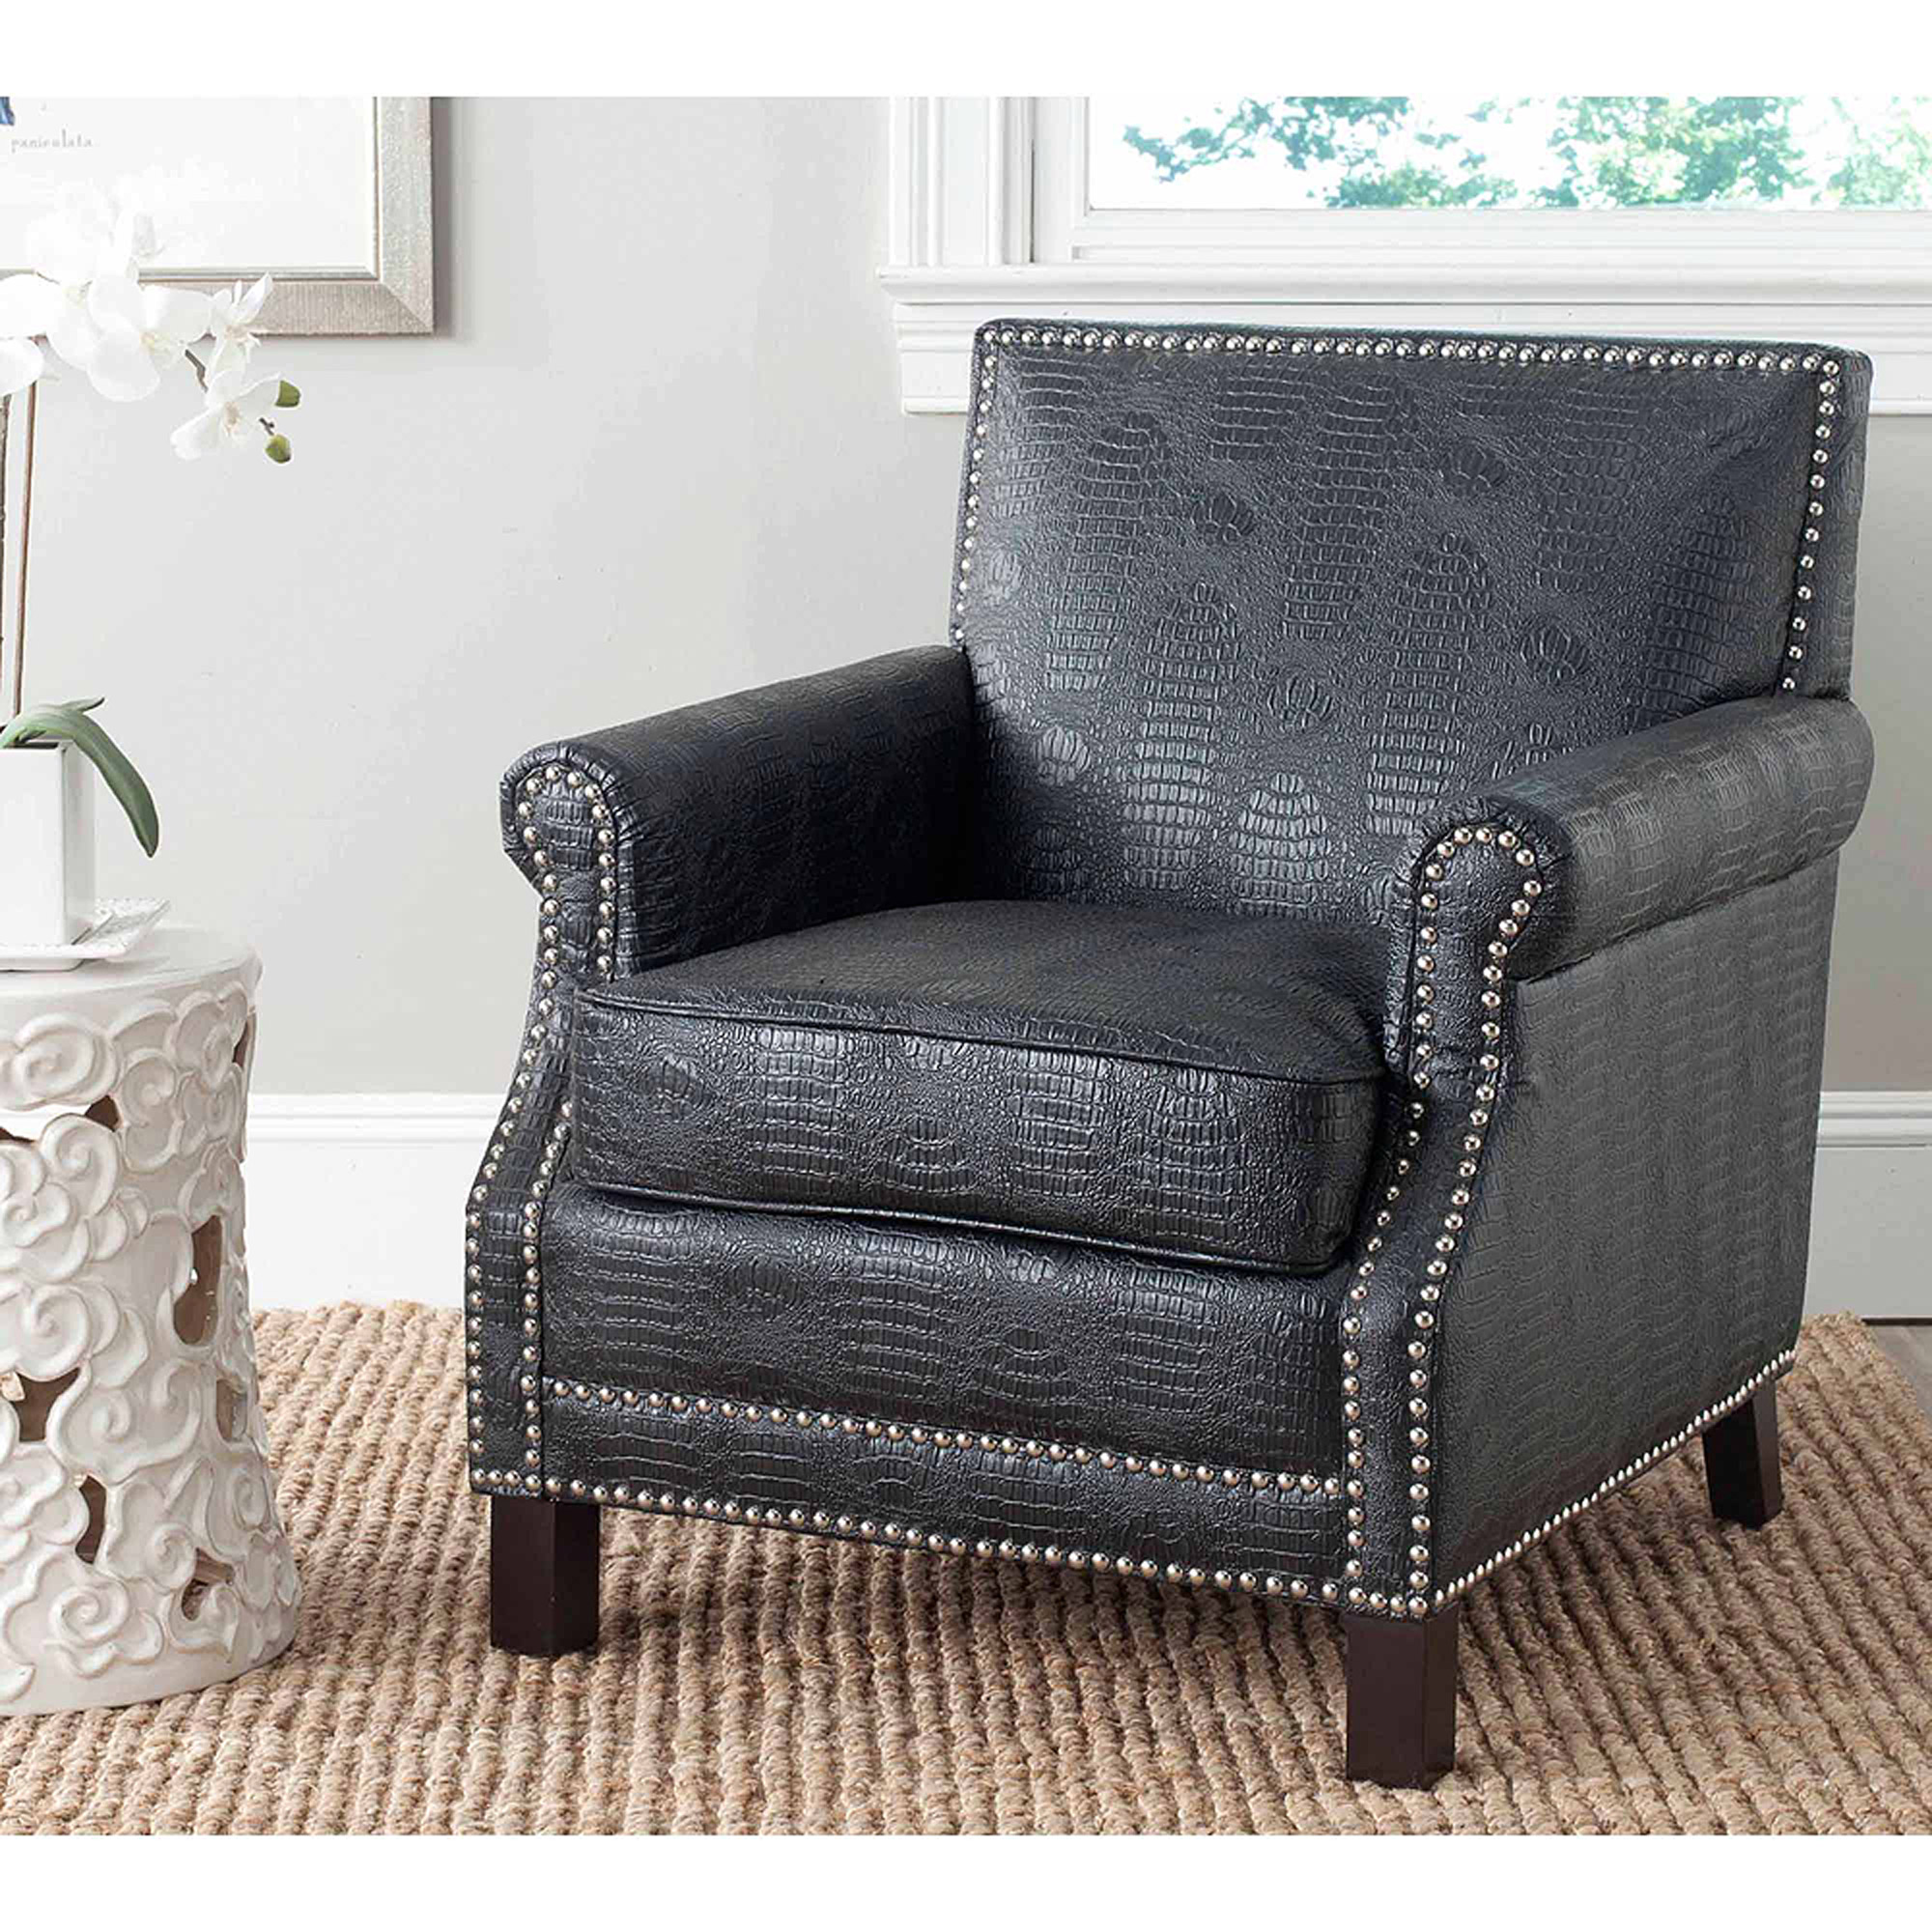 Safavieh Easton Bicast Leather Club Chair, Multiple Colors by Safavieh